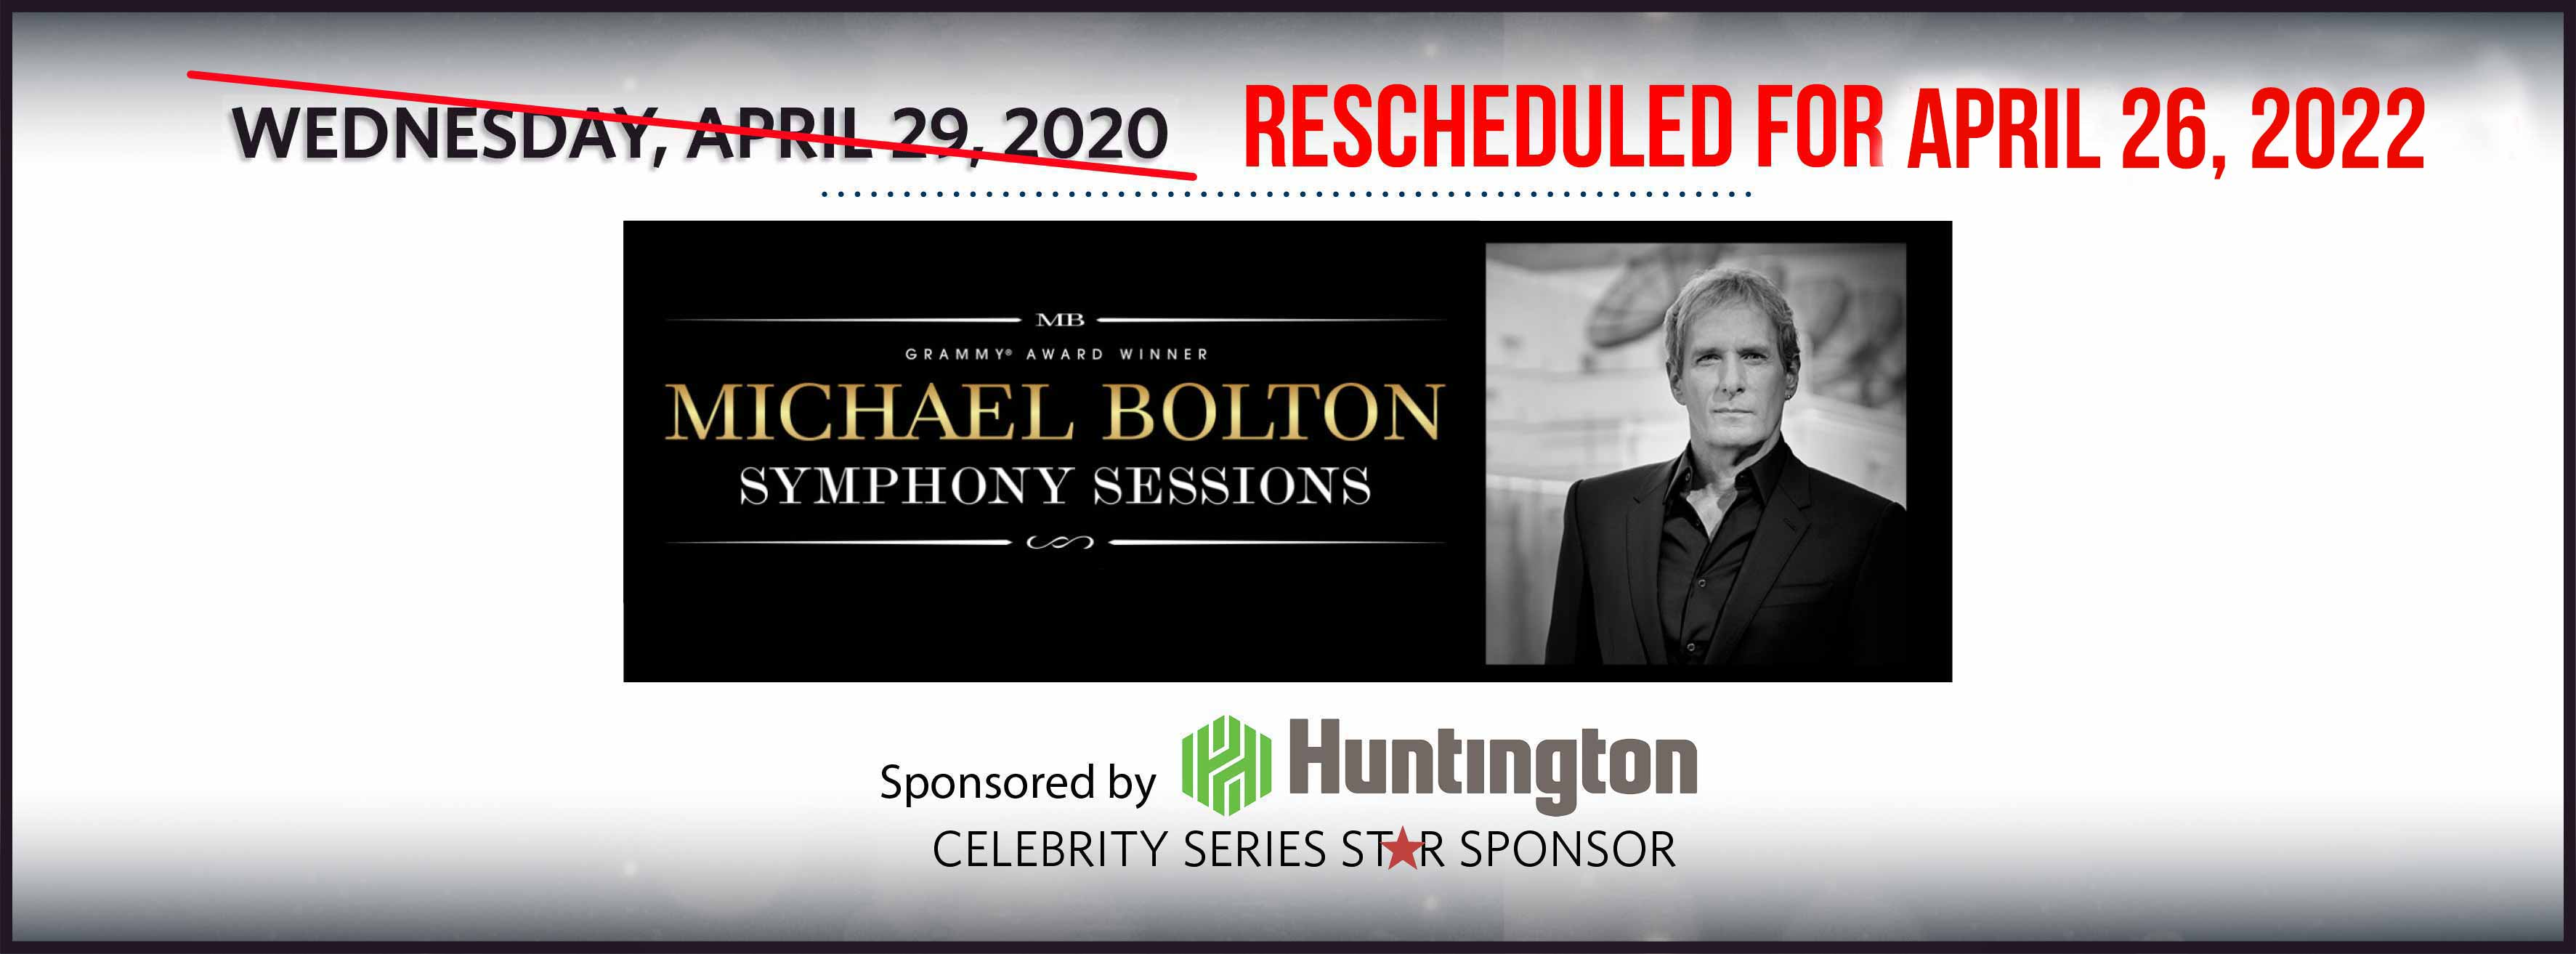 Michael Bolton: Wednesday, April 29, 2020